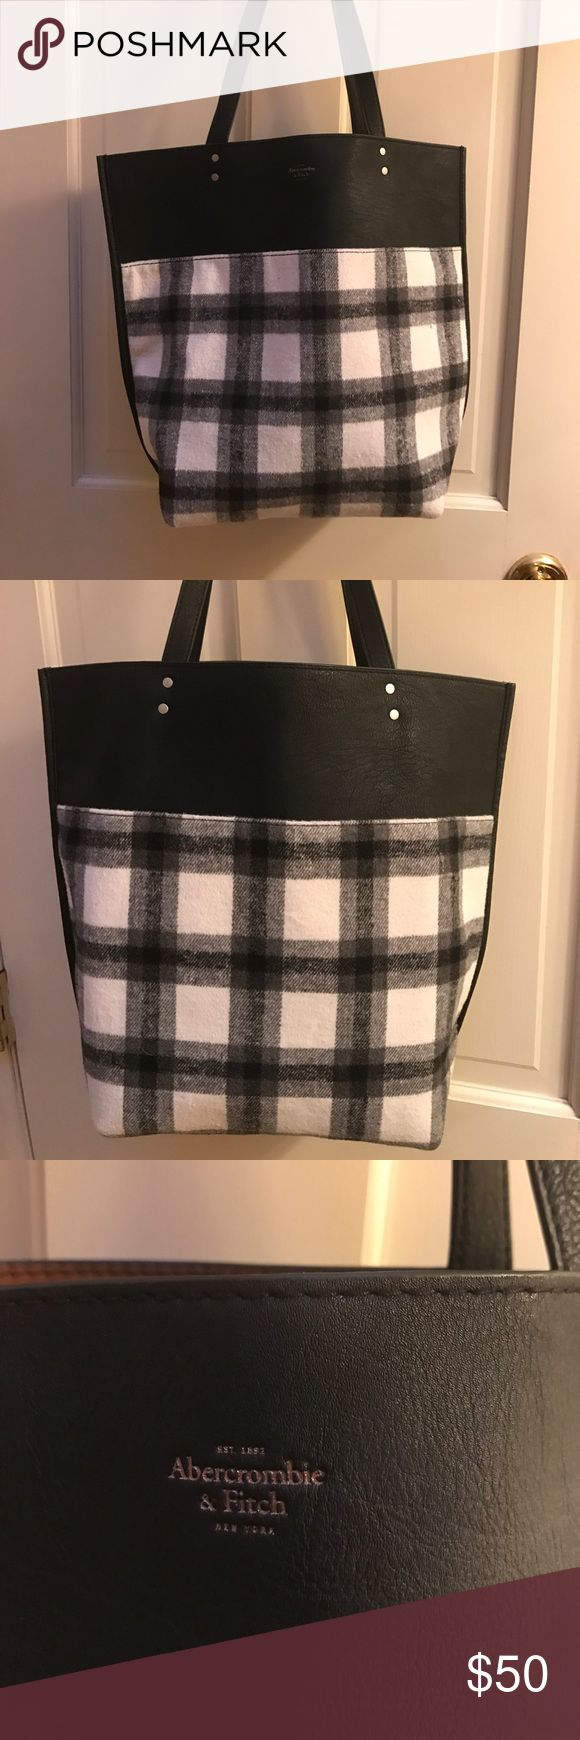 Tote leather/plaid Brand new Abercrombie and fitch bag, never used, reversible leather or plaid bag! Perfect for school or travel! Accepting offers:) Abercrombie & Fitch Bags Totes